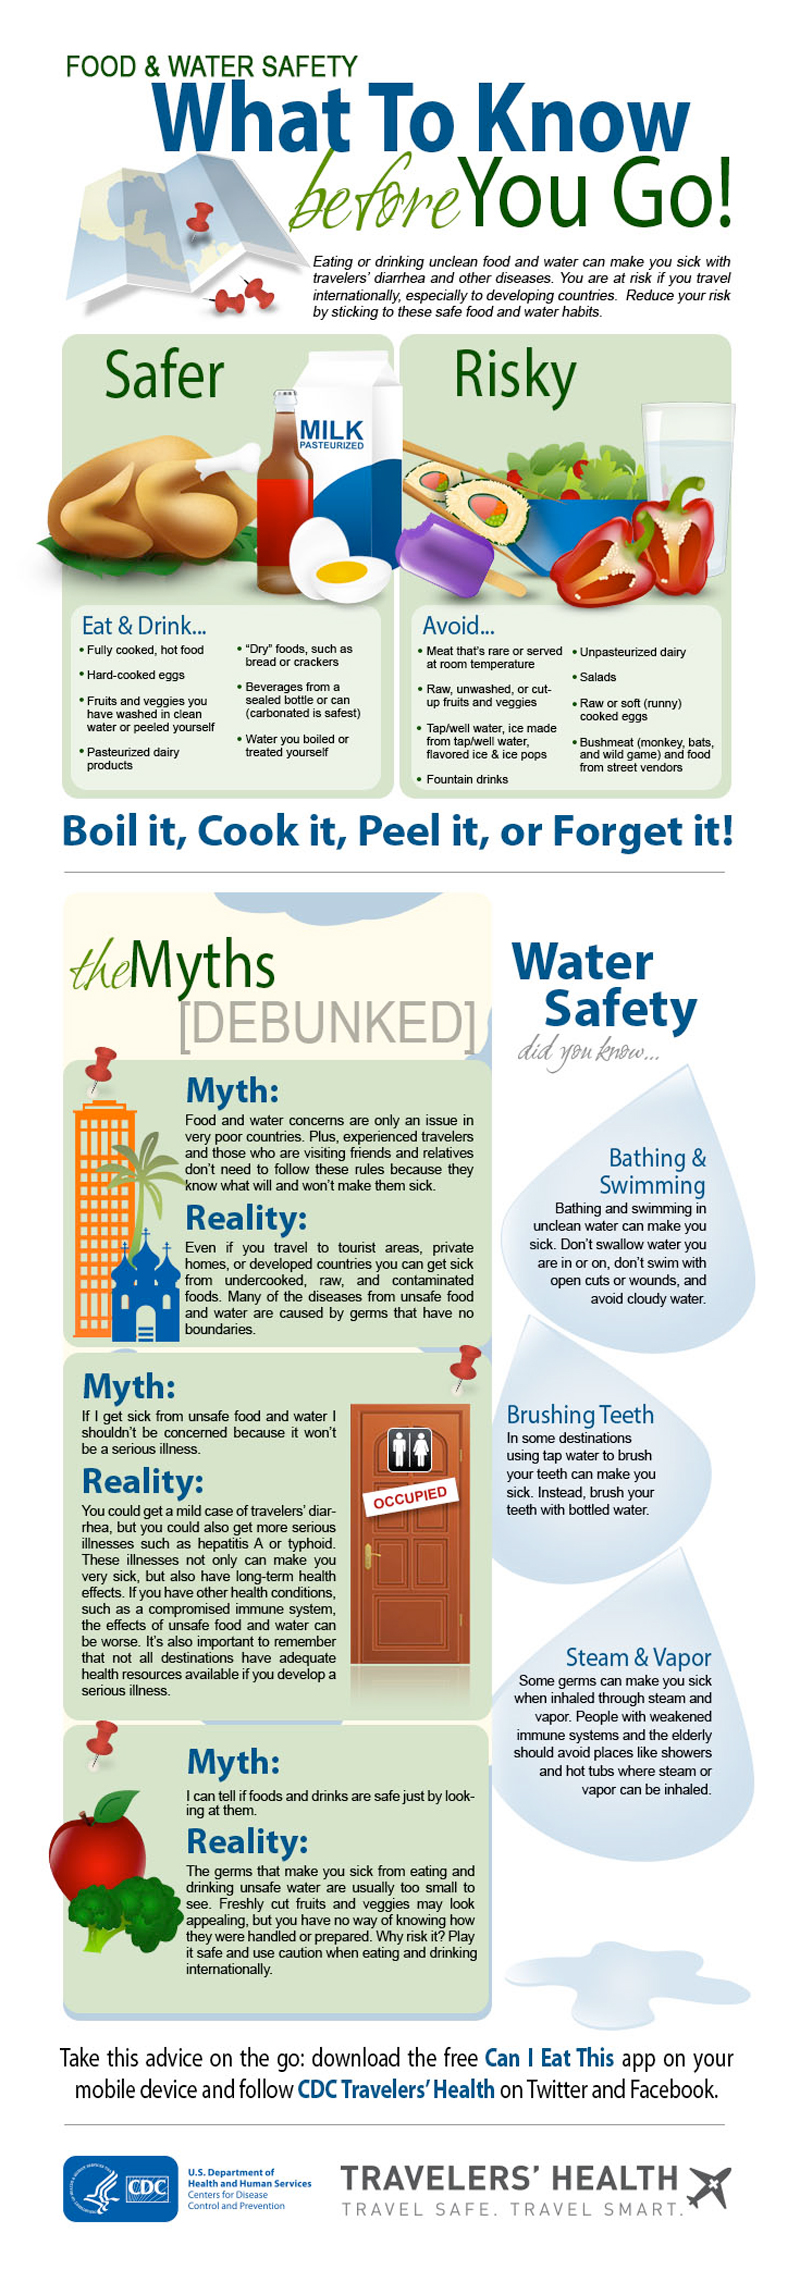 Food and Water Safety While Traveling